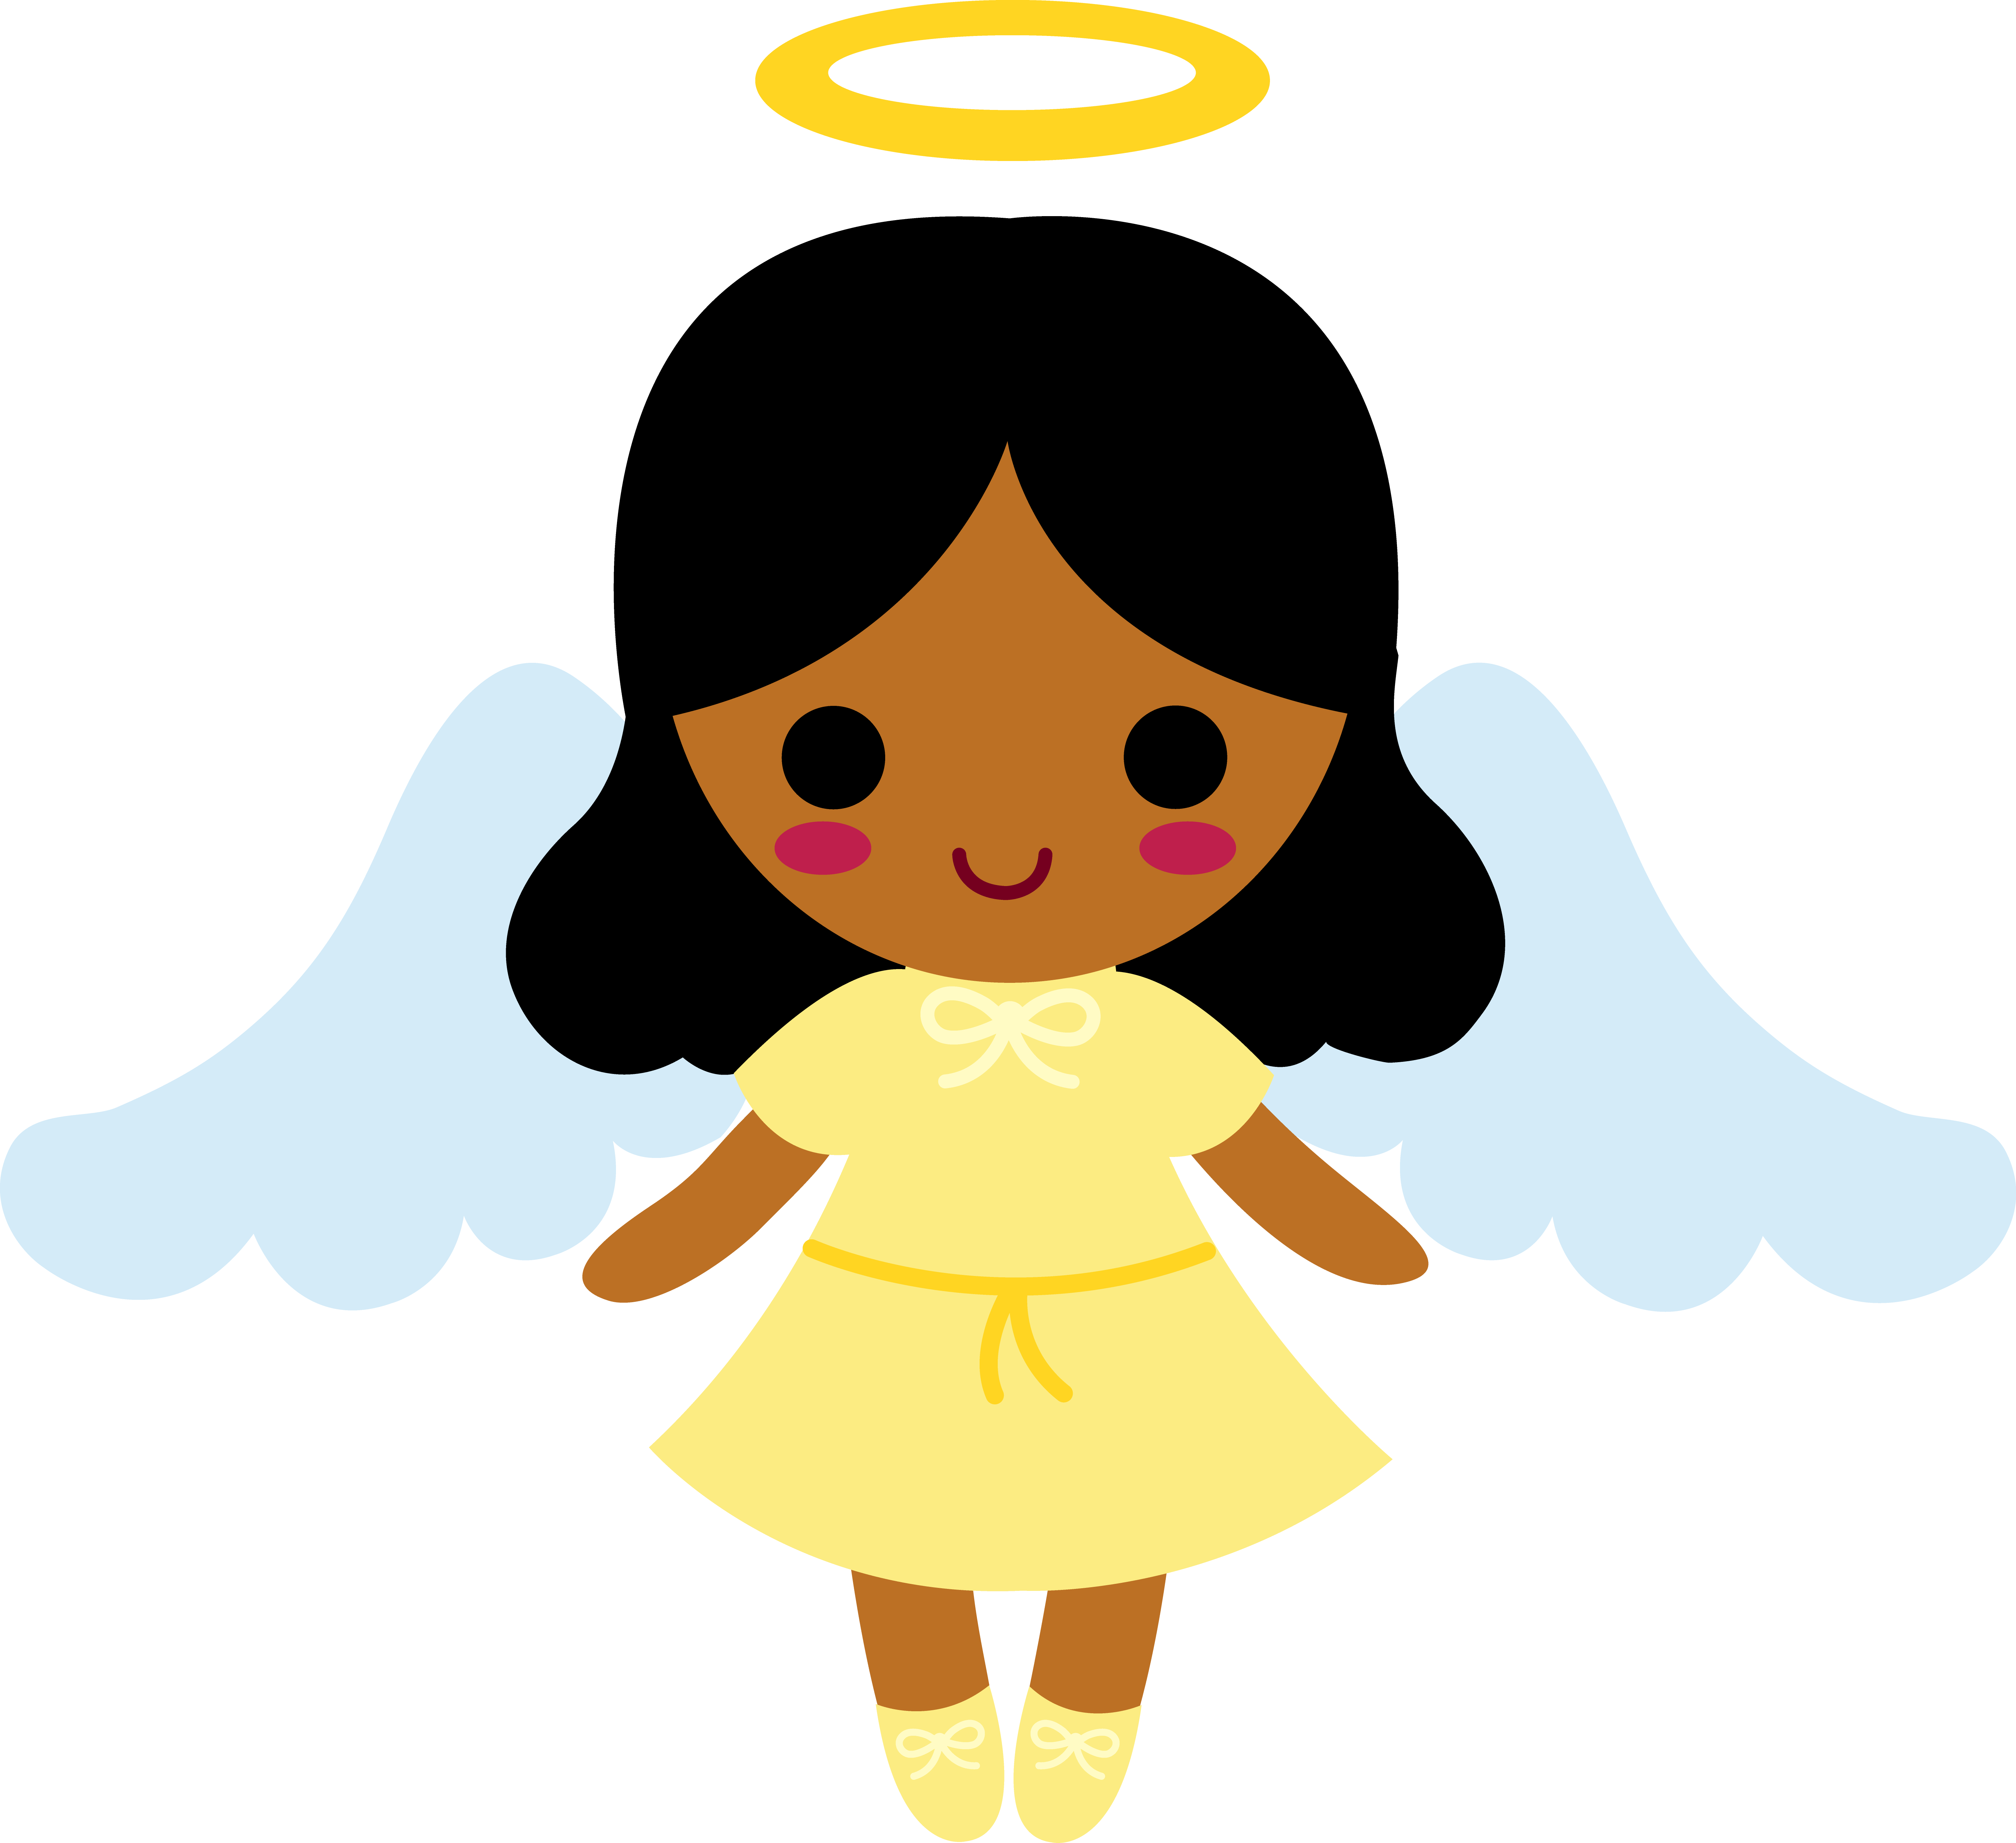 Free Black Angel Pictures, Download Free Clip Art, Free Clip.